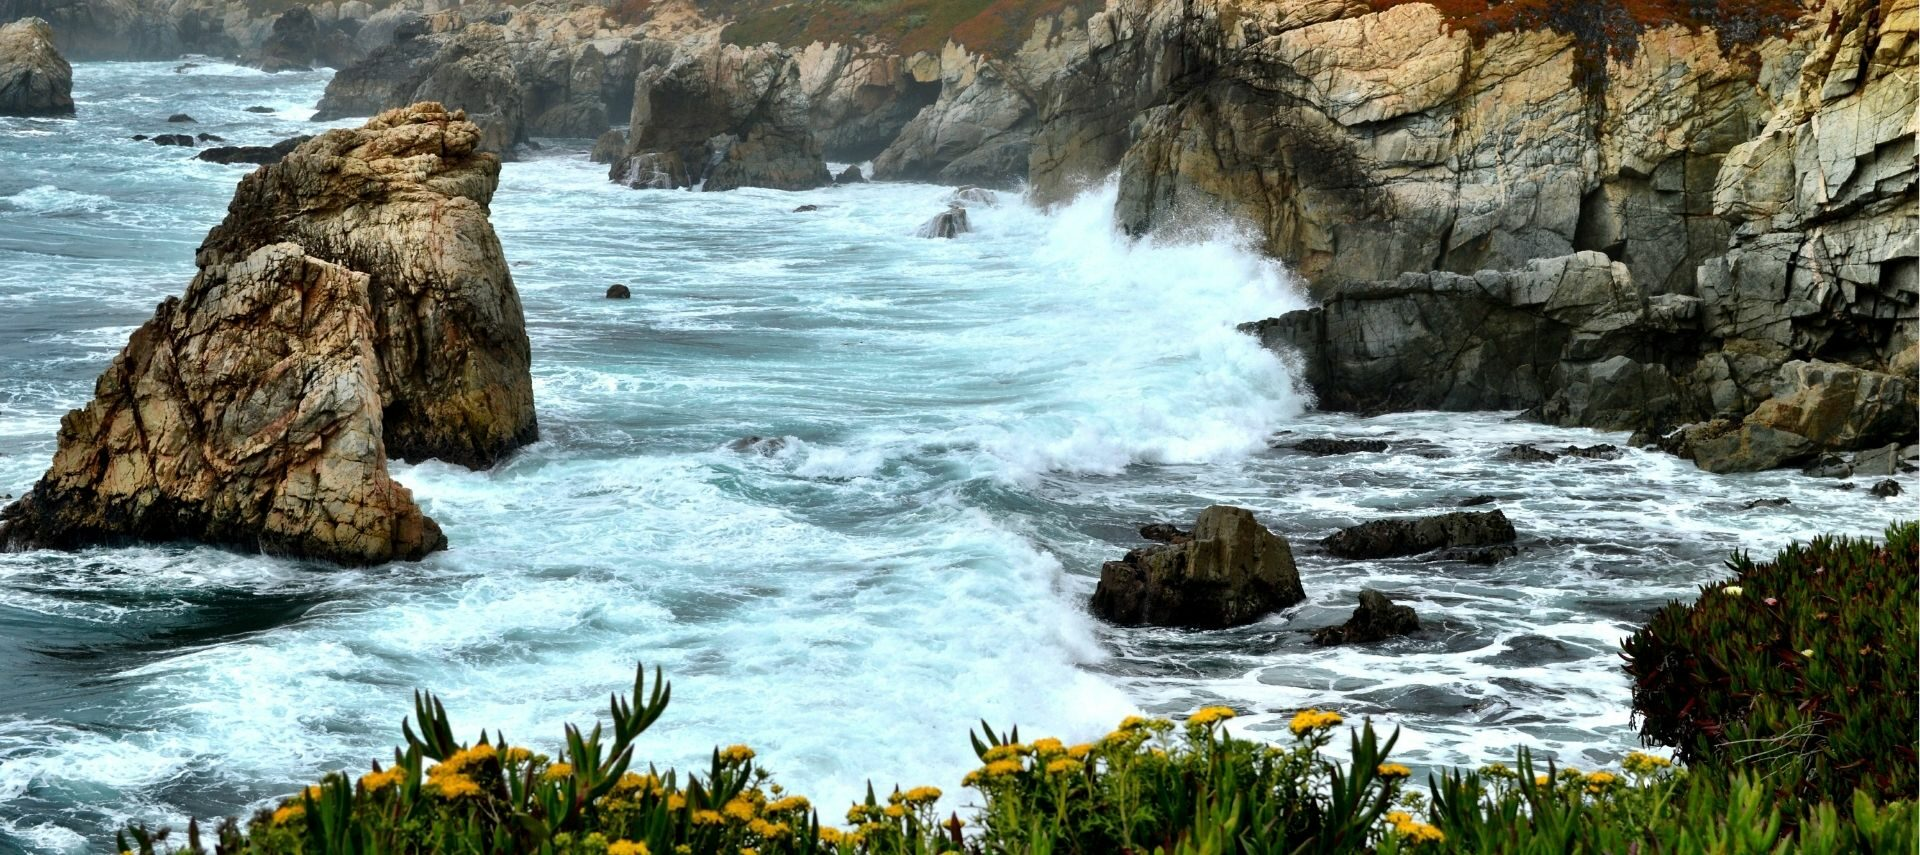 Carmel coast with ruggest coastline and white capped waves and yellow spring flowers